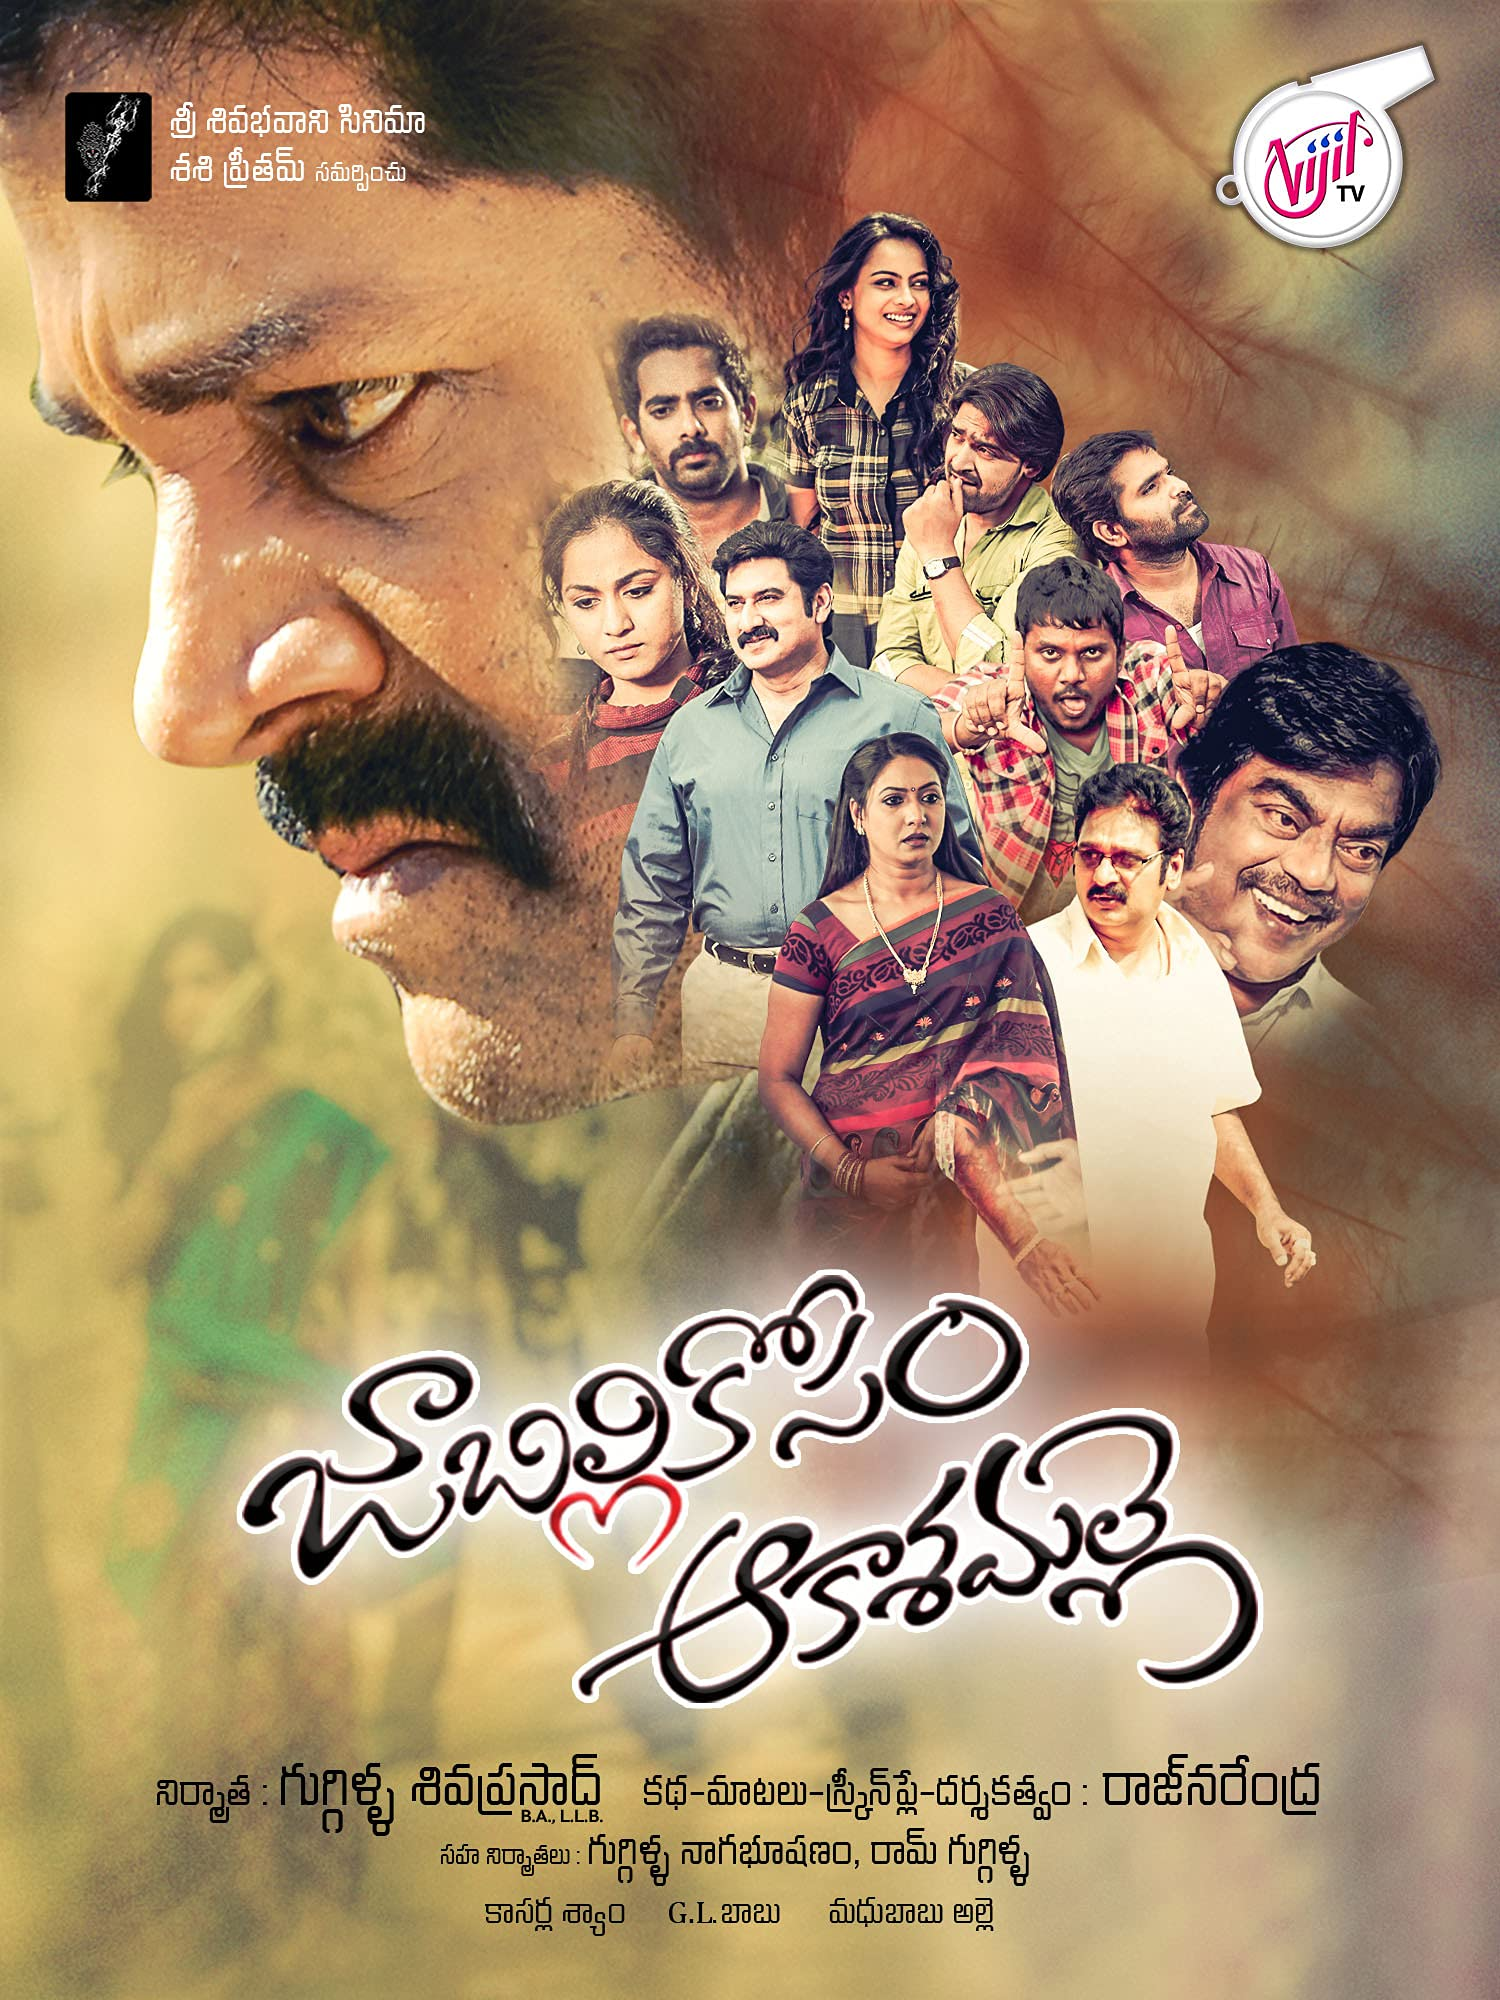 Jabilli Kosam Akasamalle 2021 Telugu 720p HDRip ESubs 1.33GB Download